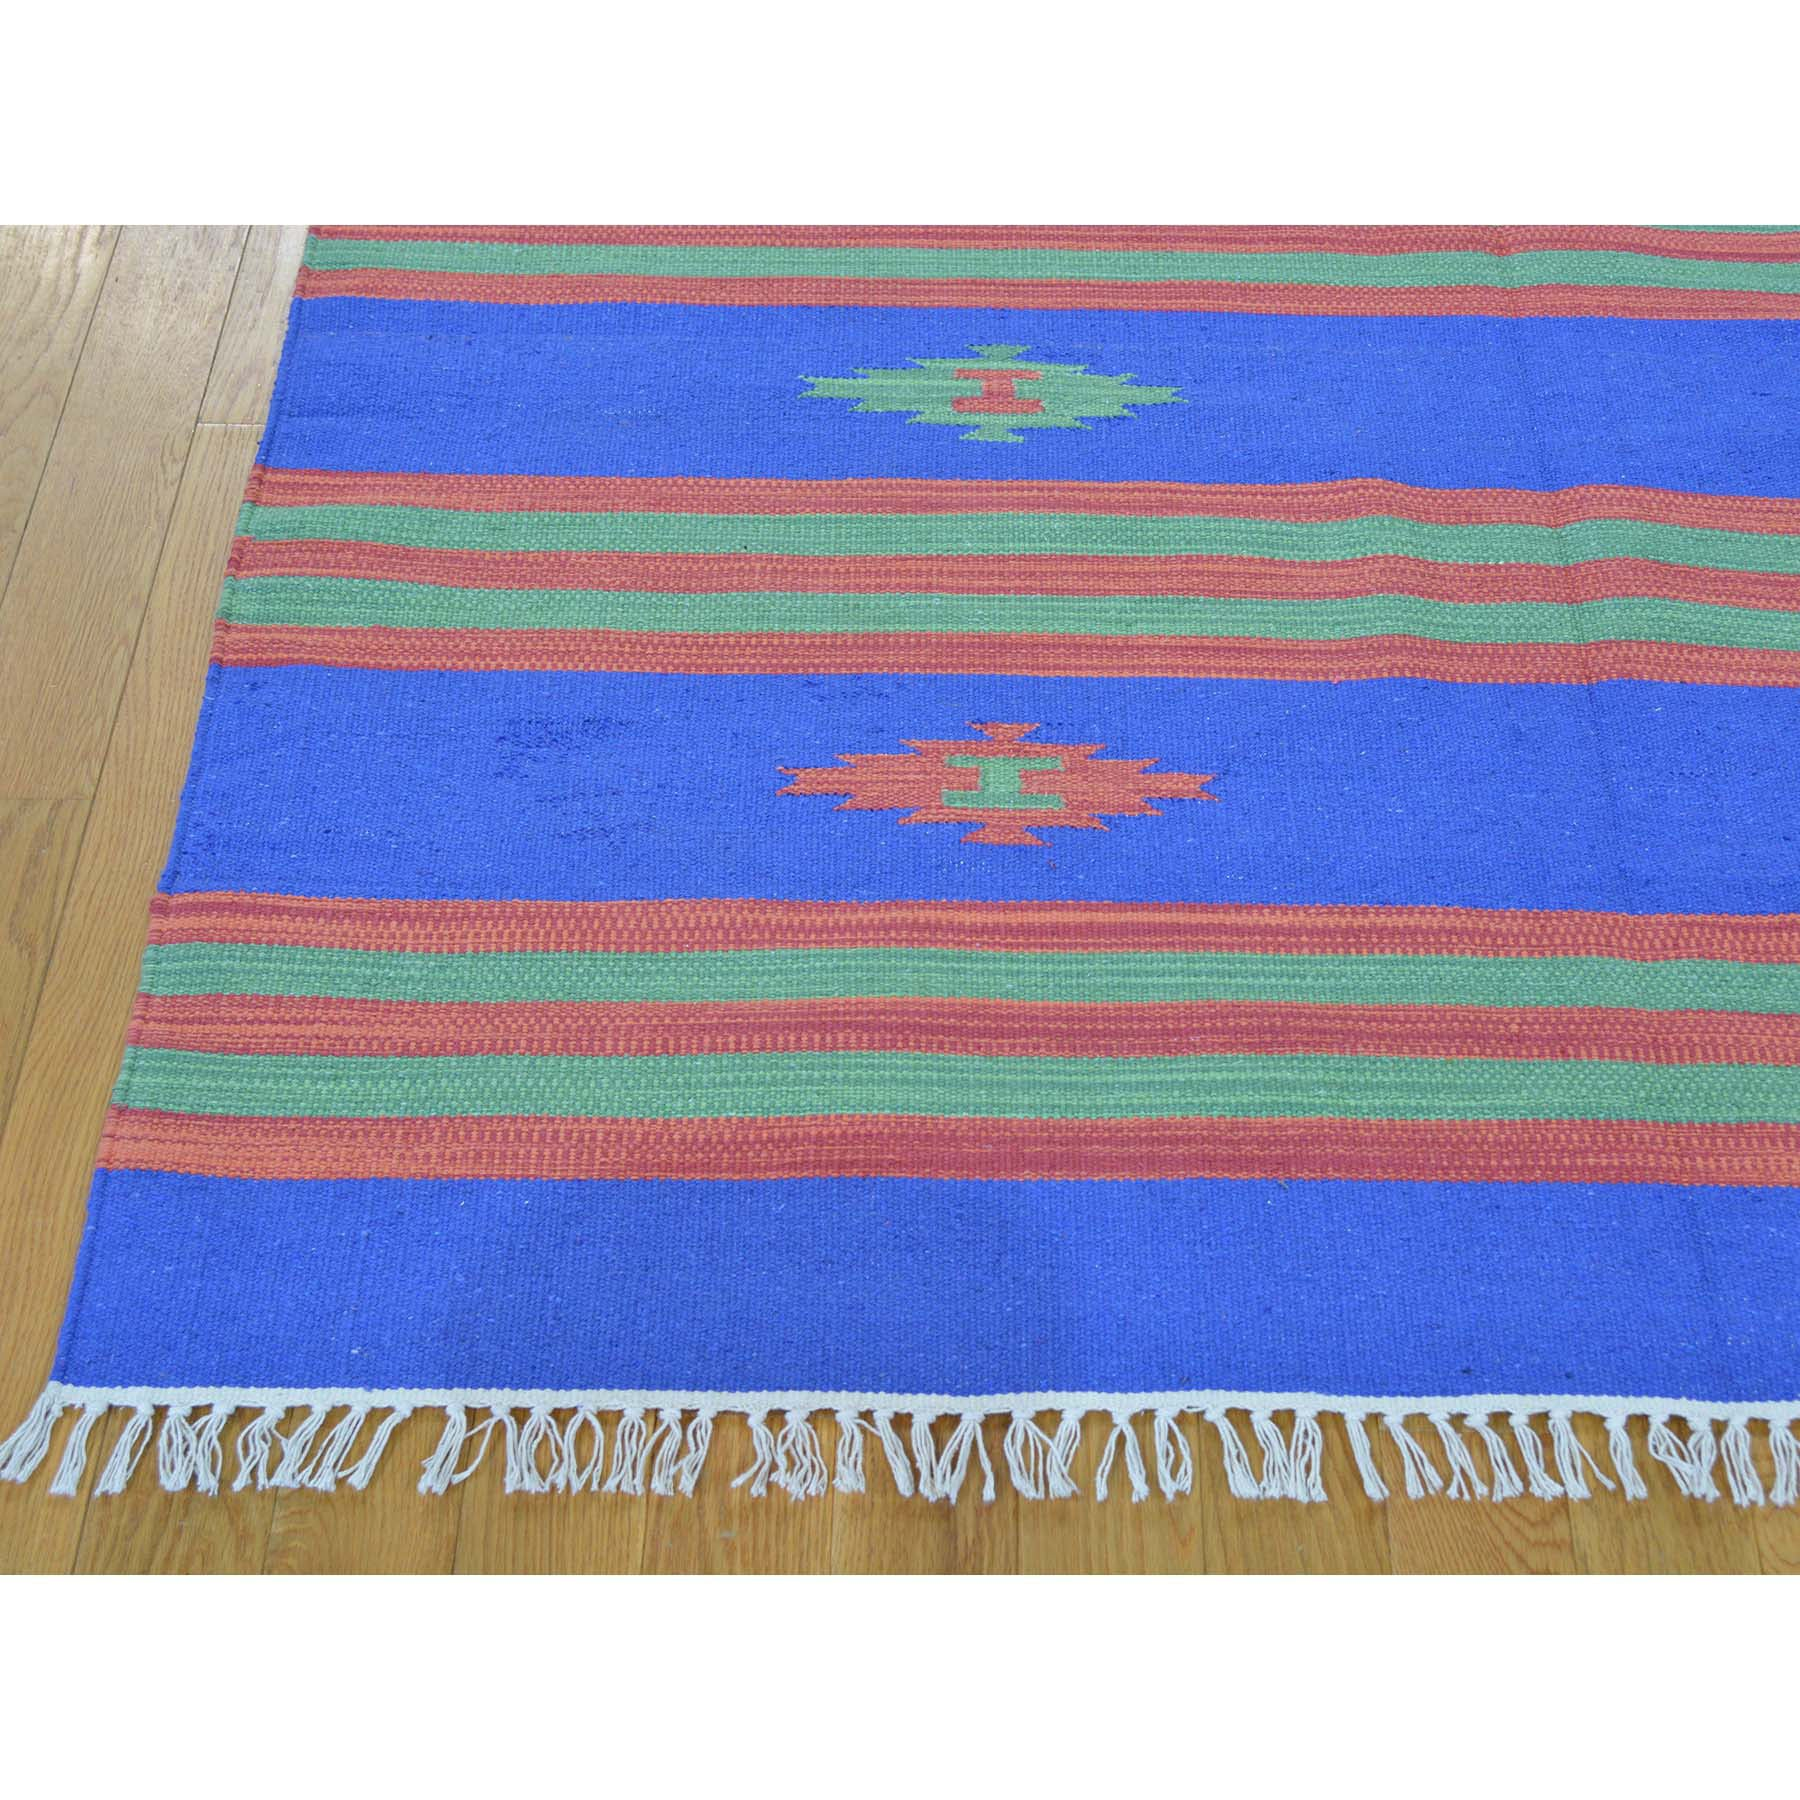 "Handmade Flat Weave Rectangle Rug > Design# SH26123 > Size: 5'-1"" x 7'-2"" [ONLINE ONLY]"